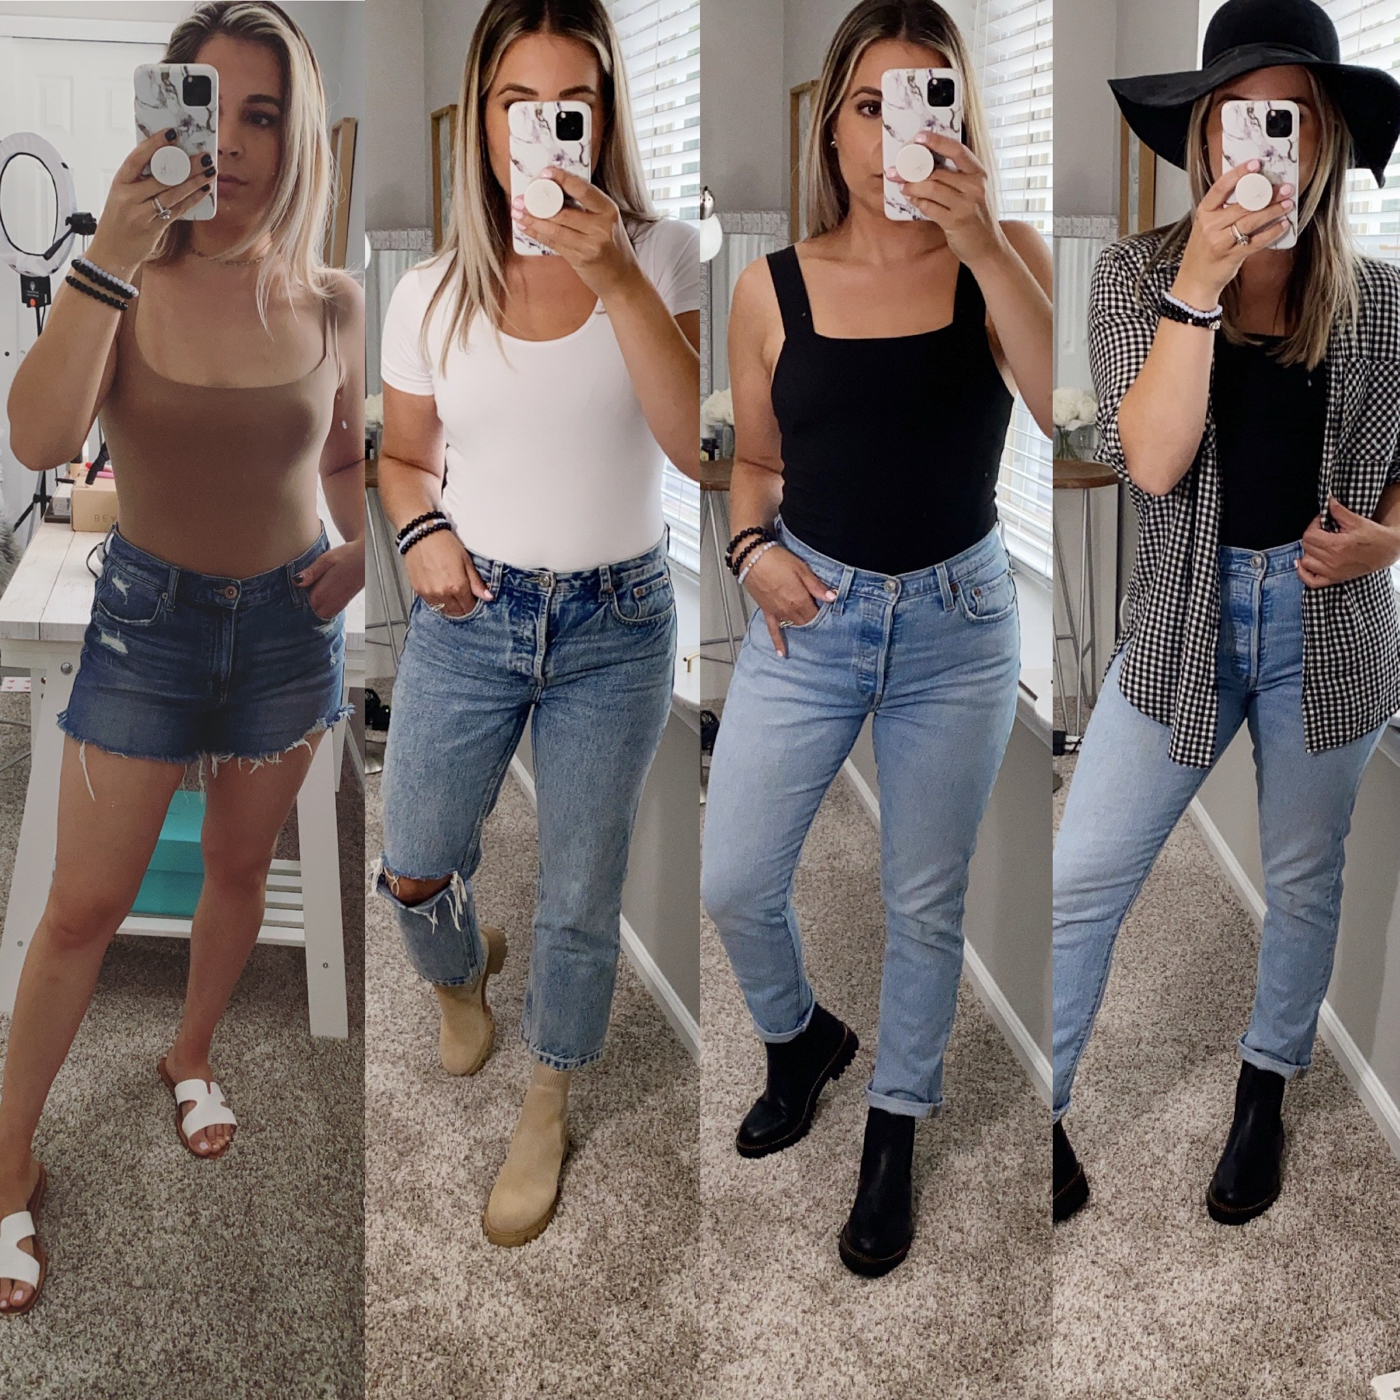 3 Bodysuits You Need | Most Flattering and Comfortable Bodysuits